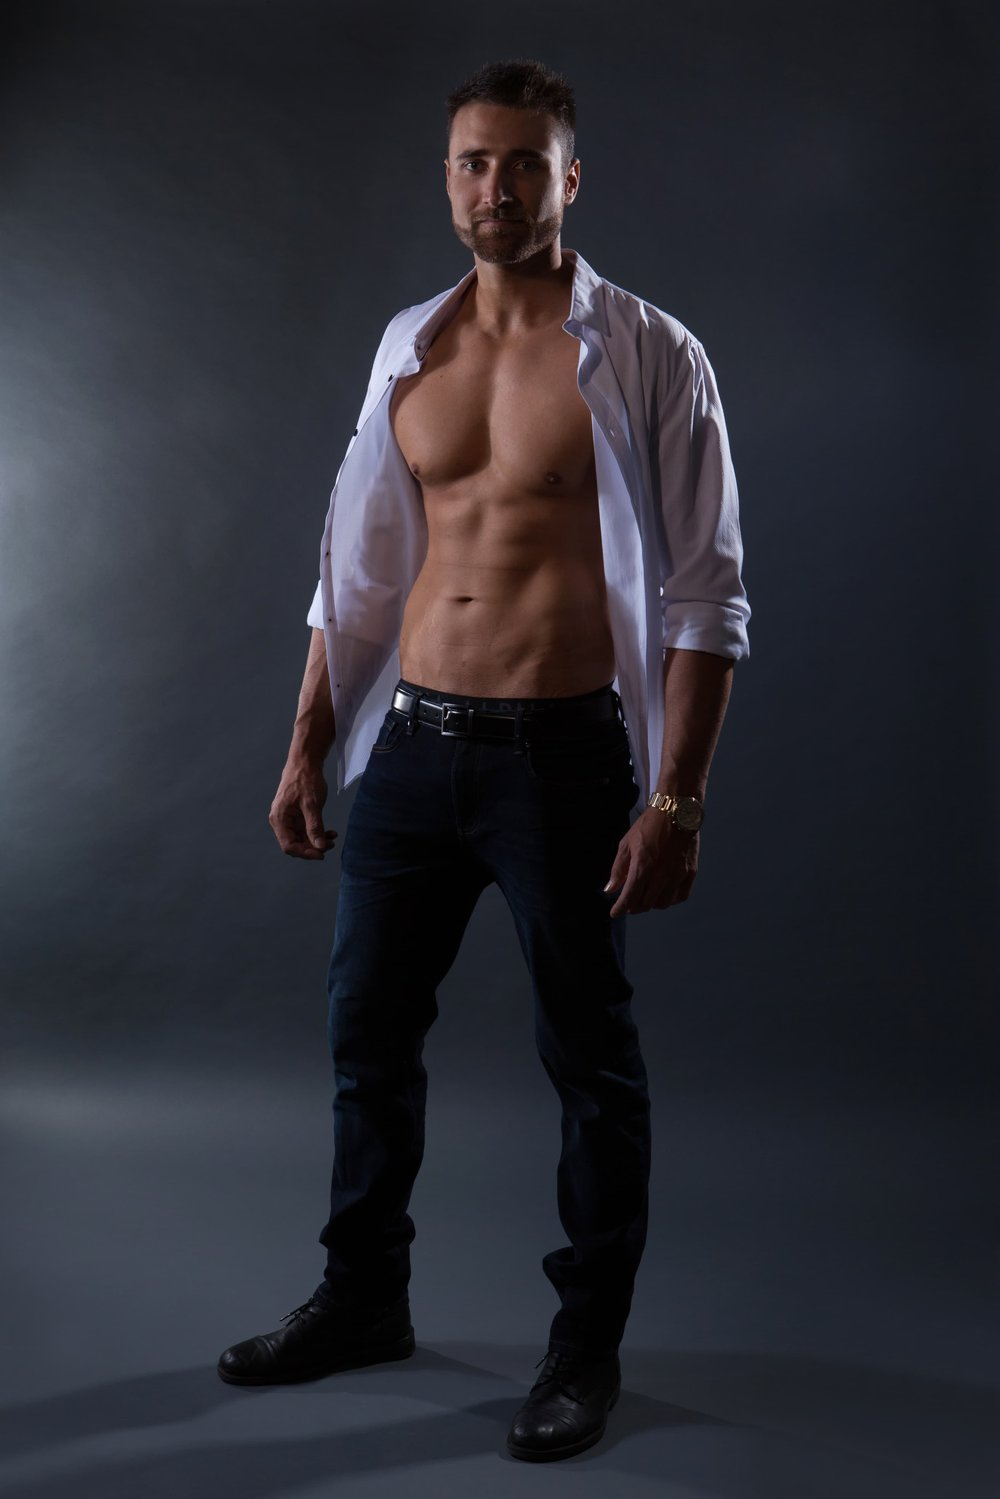 New zealand male topless waiter for hire in the gold coast, brisbane and byron bay. kiwi boy waitress. kiwi male stripper.